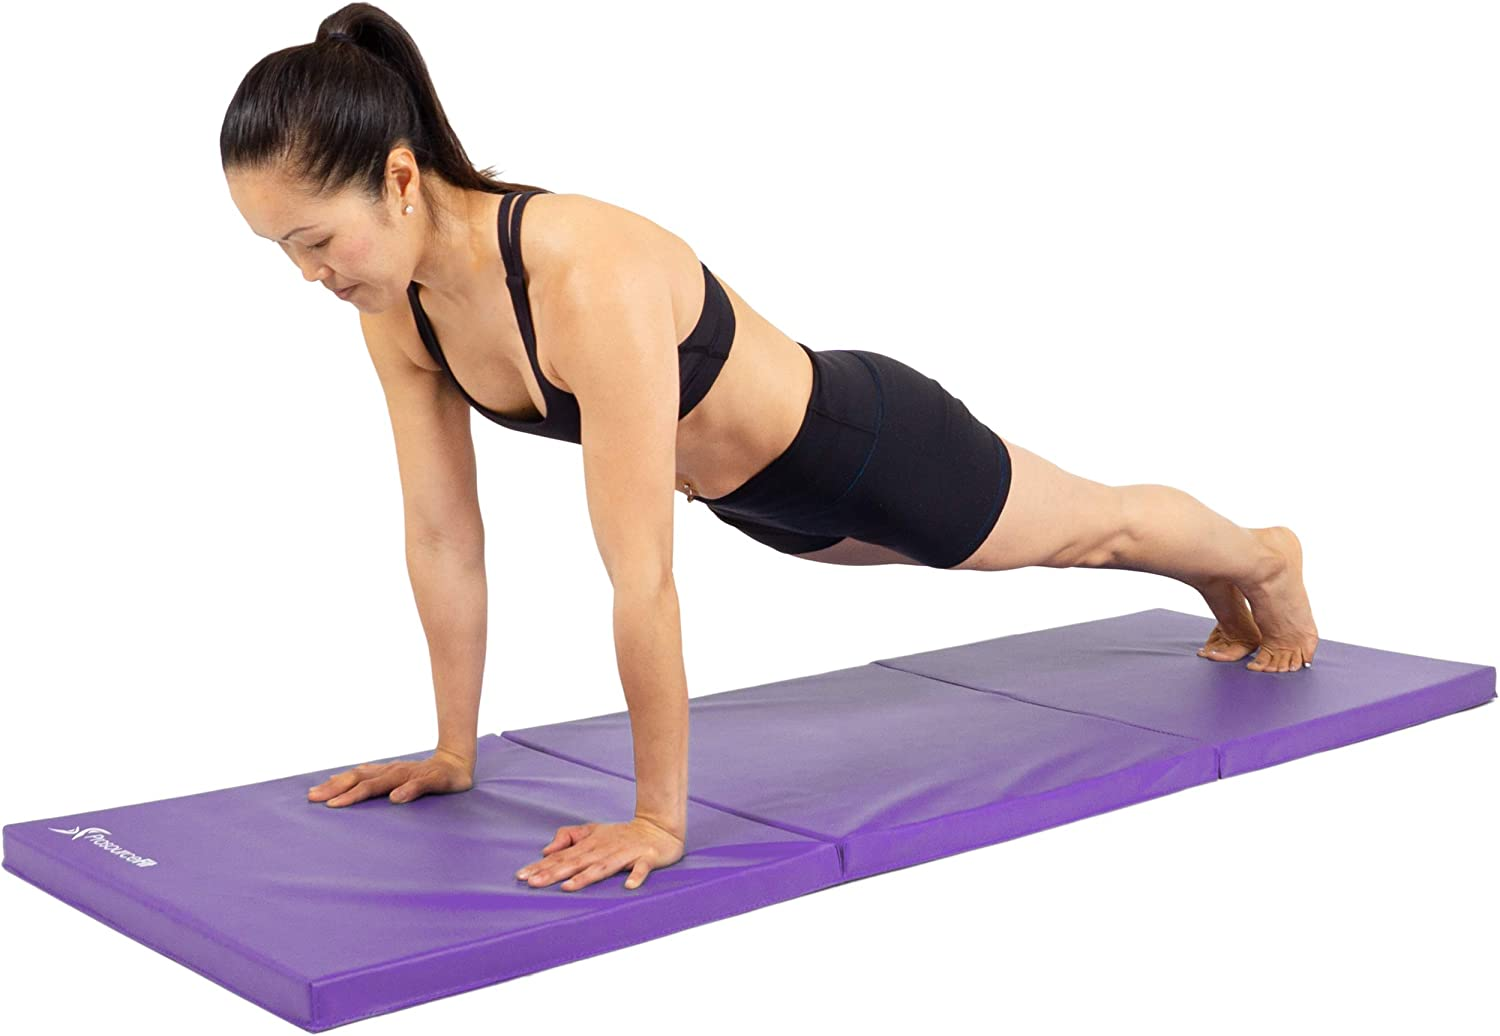 ProsourceFit Tri-Fold Folding Thick Exercise Mat 6'x2' with Carrying Handles for MMA, Gymnastics, Stretching, Core Workouts, Purple : Sports & Outdoors